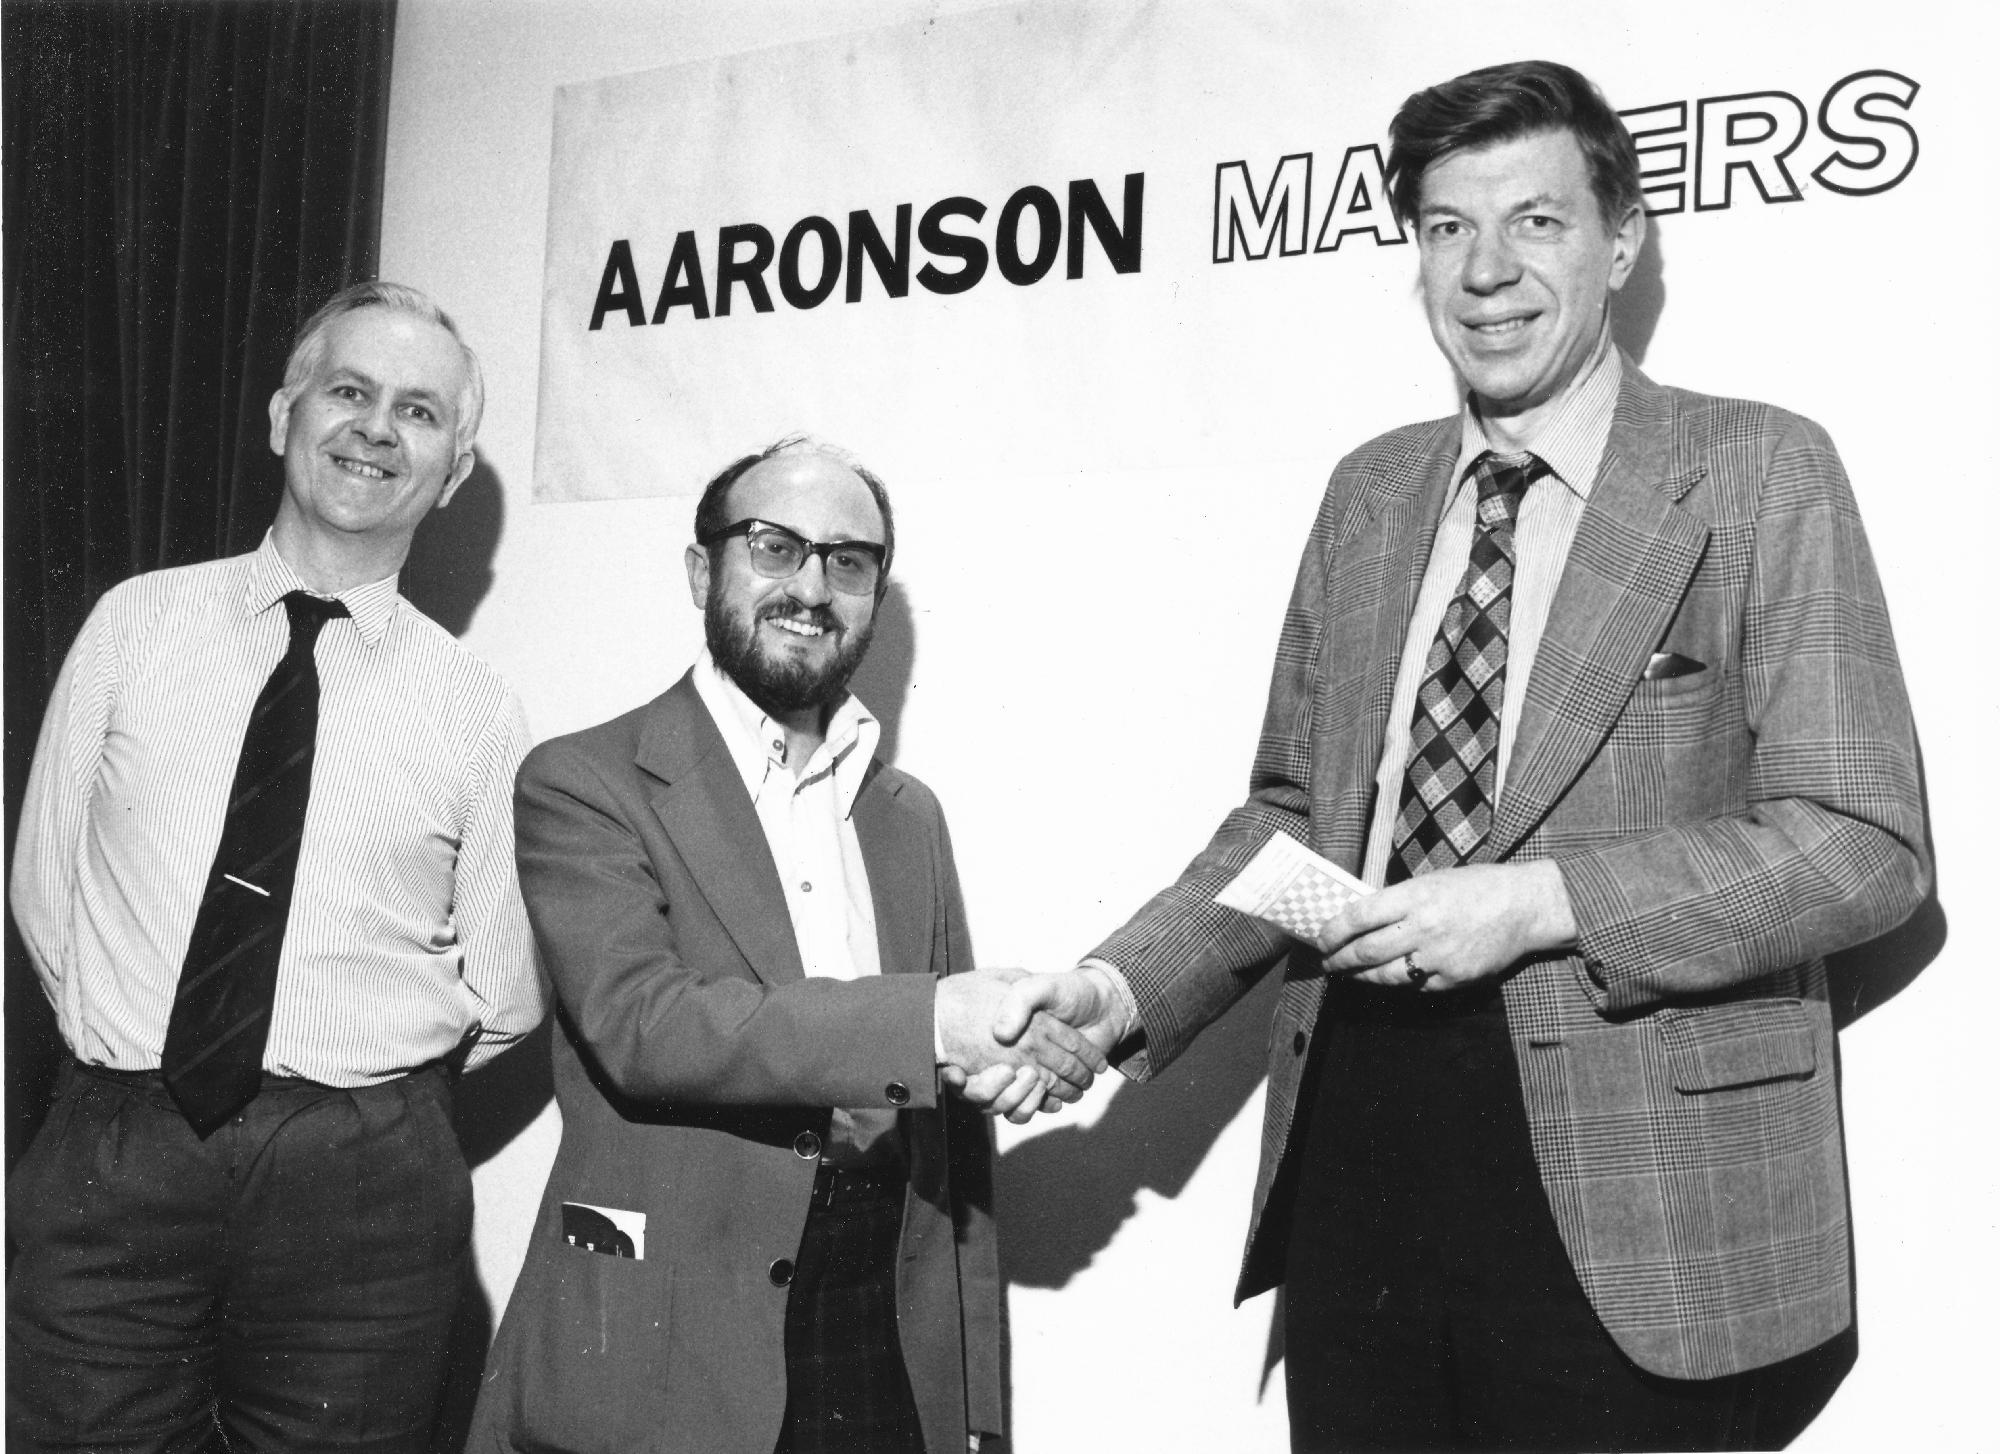 Leonard Barden, Stewart Reuben and Michael Franklin at the 1978 Aaronson Masters